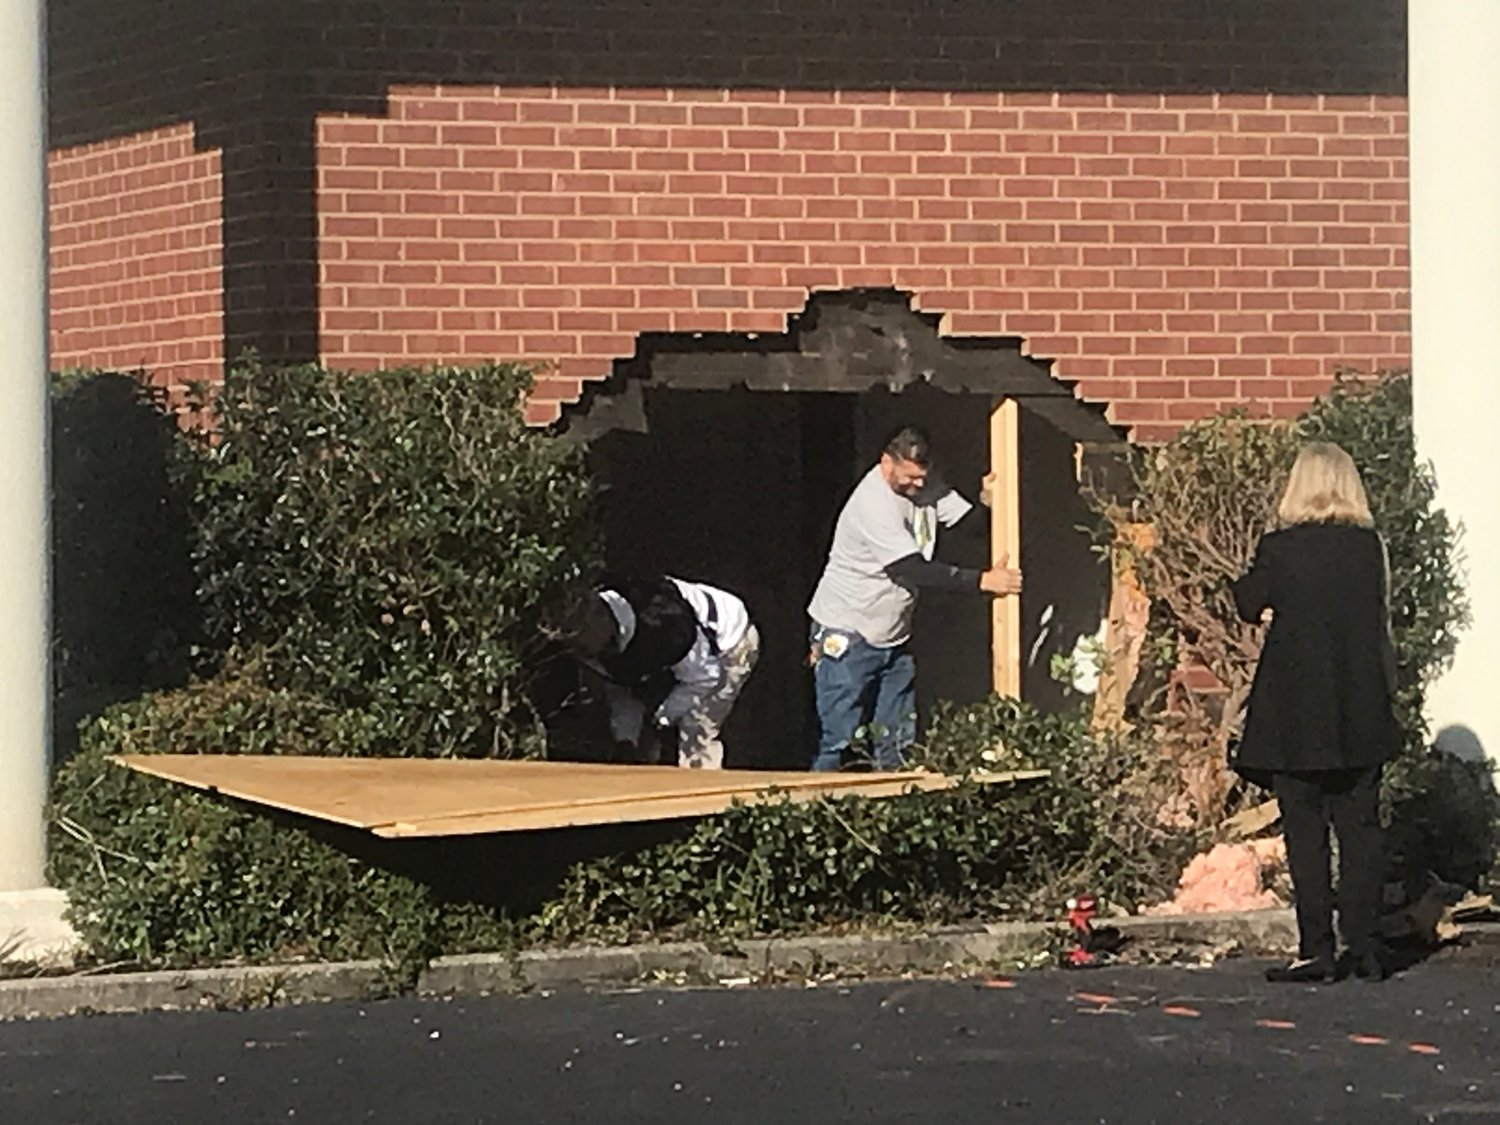 Crews begin work on Wednesday, Nov. 13 to repair damages to the Peachtree Professional Center.